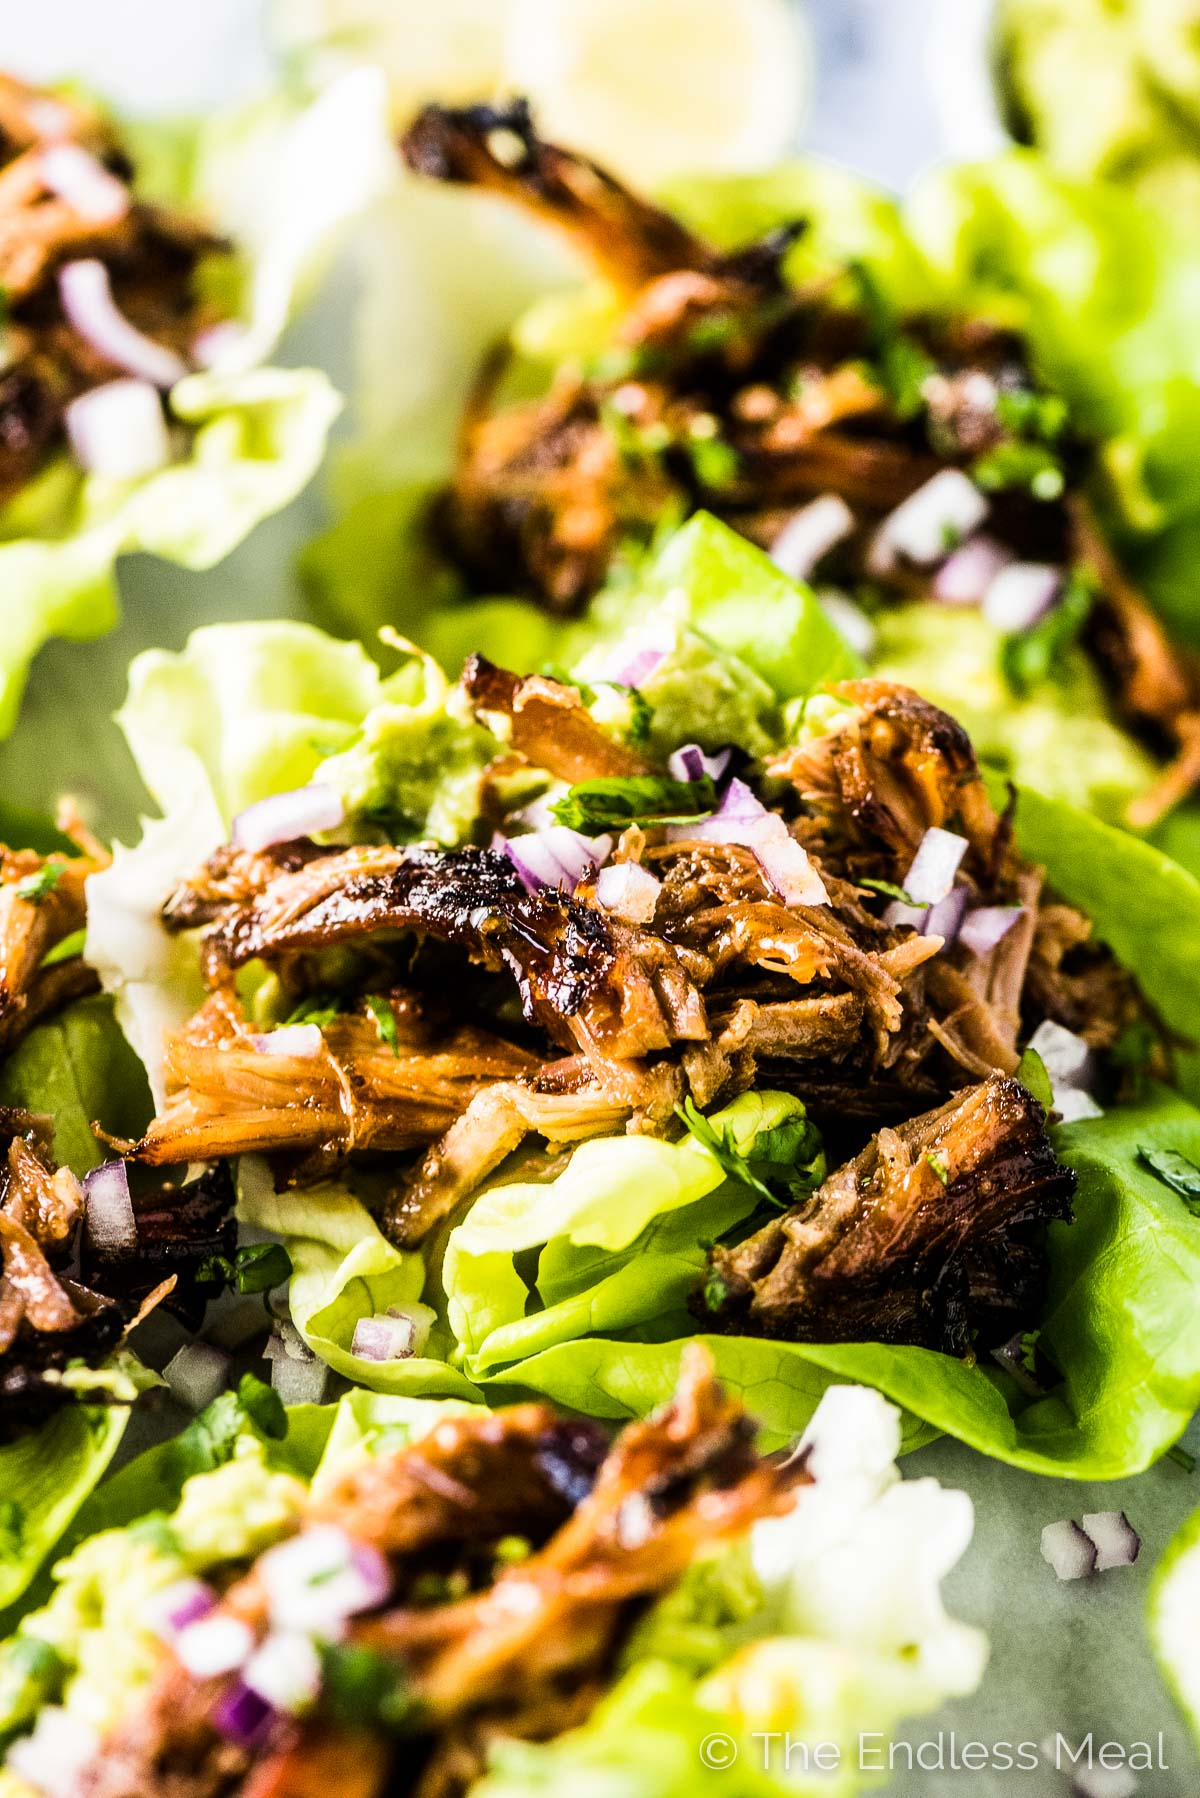 Taco Lettuce Wraps filled with the most delicious pulled pork carnitas.